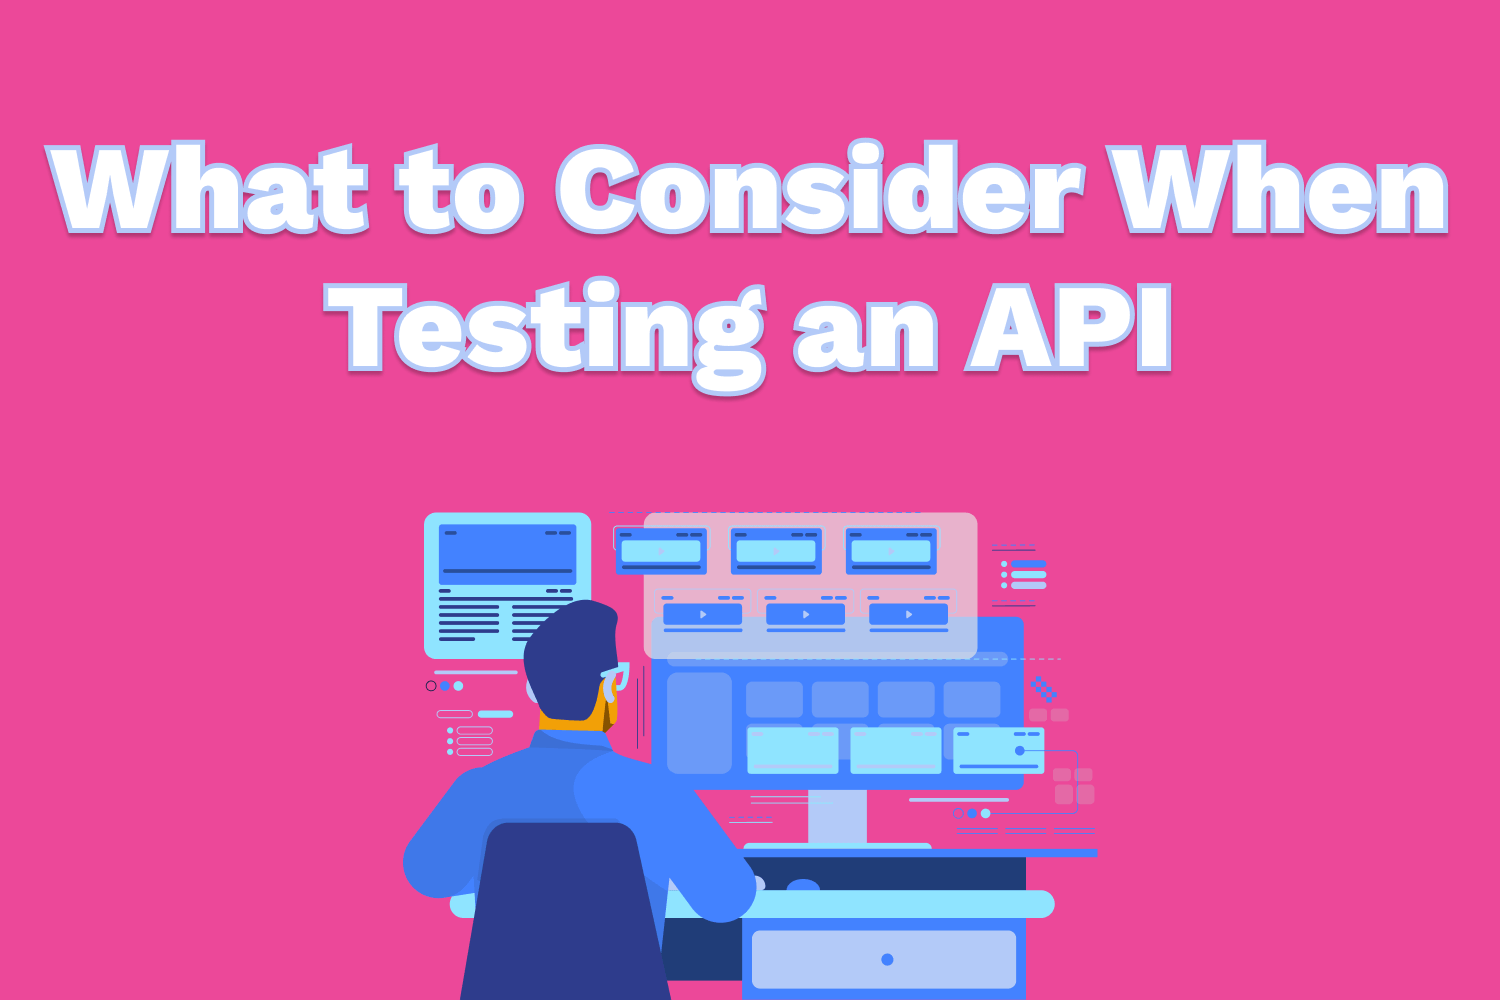 What to Consider When Testing an API